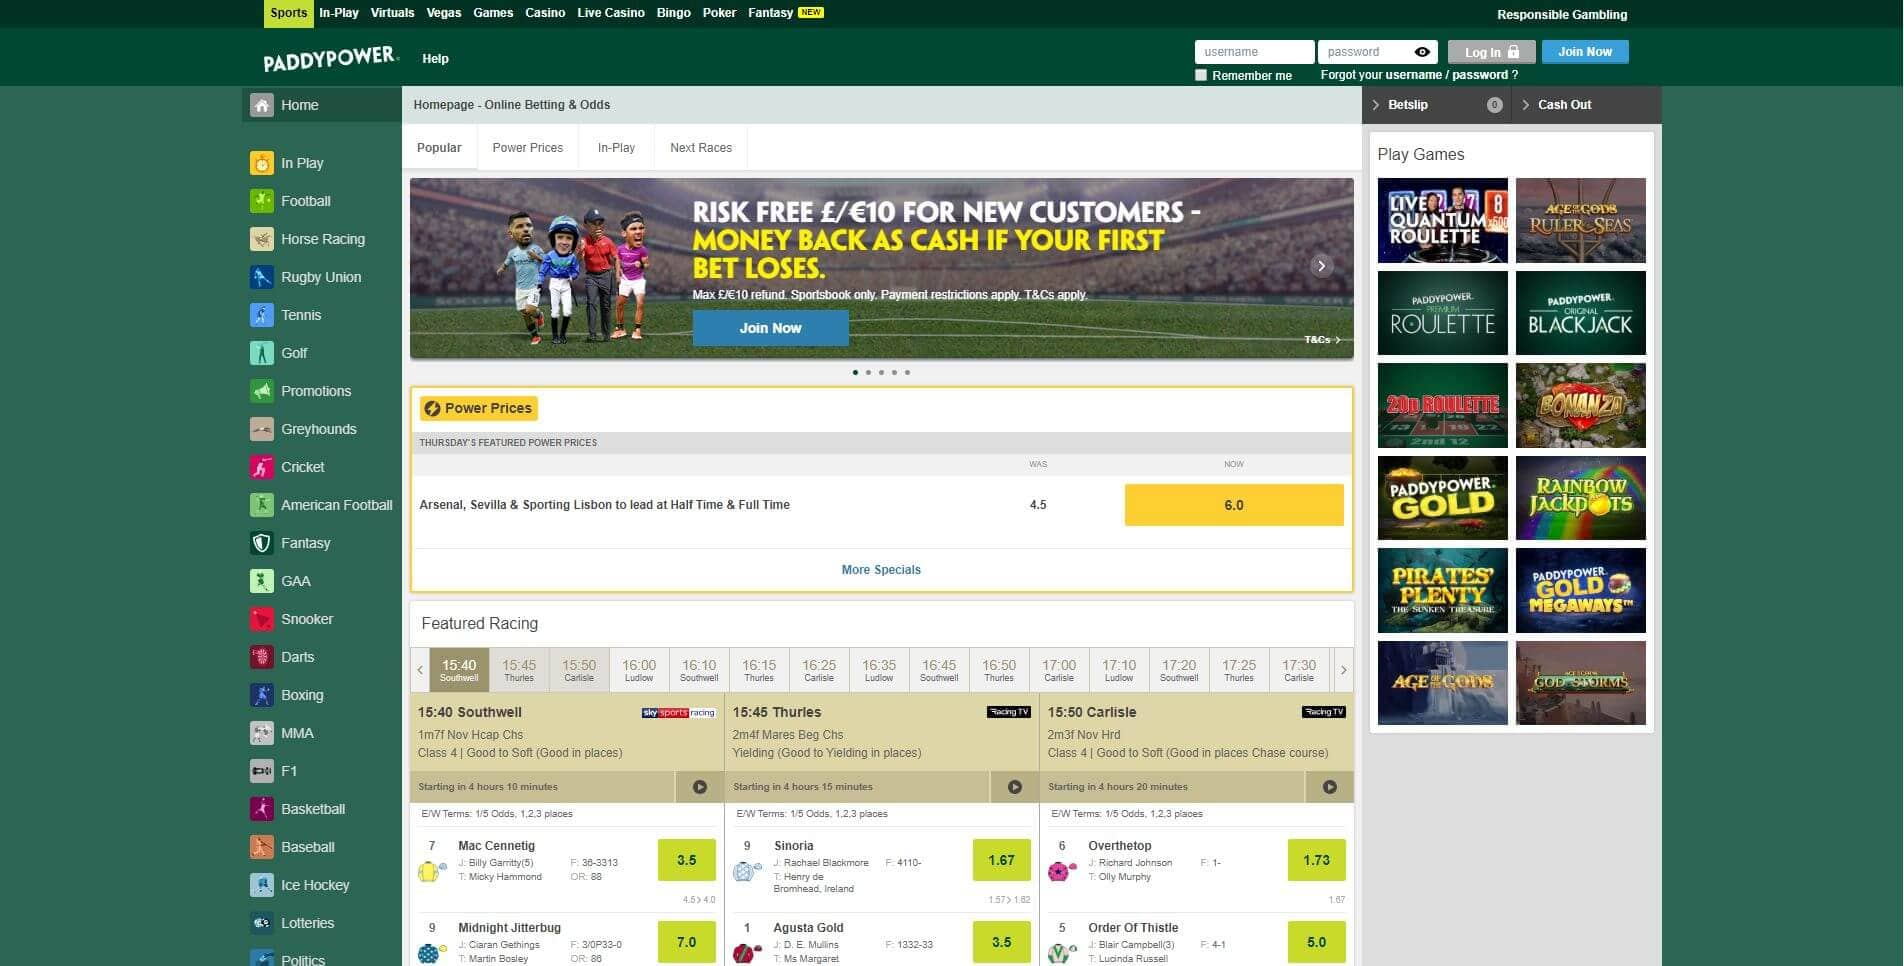 Paddy power spread betting review s a horse racing betting odds